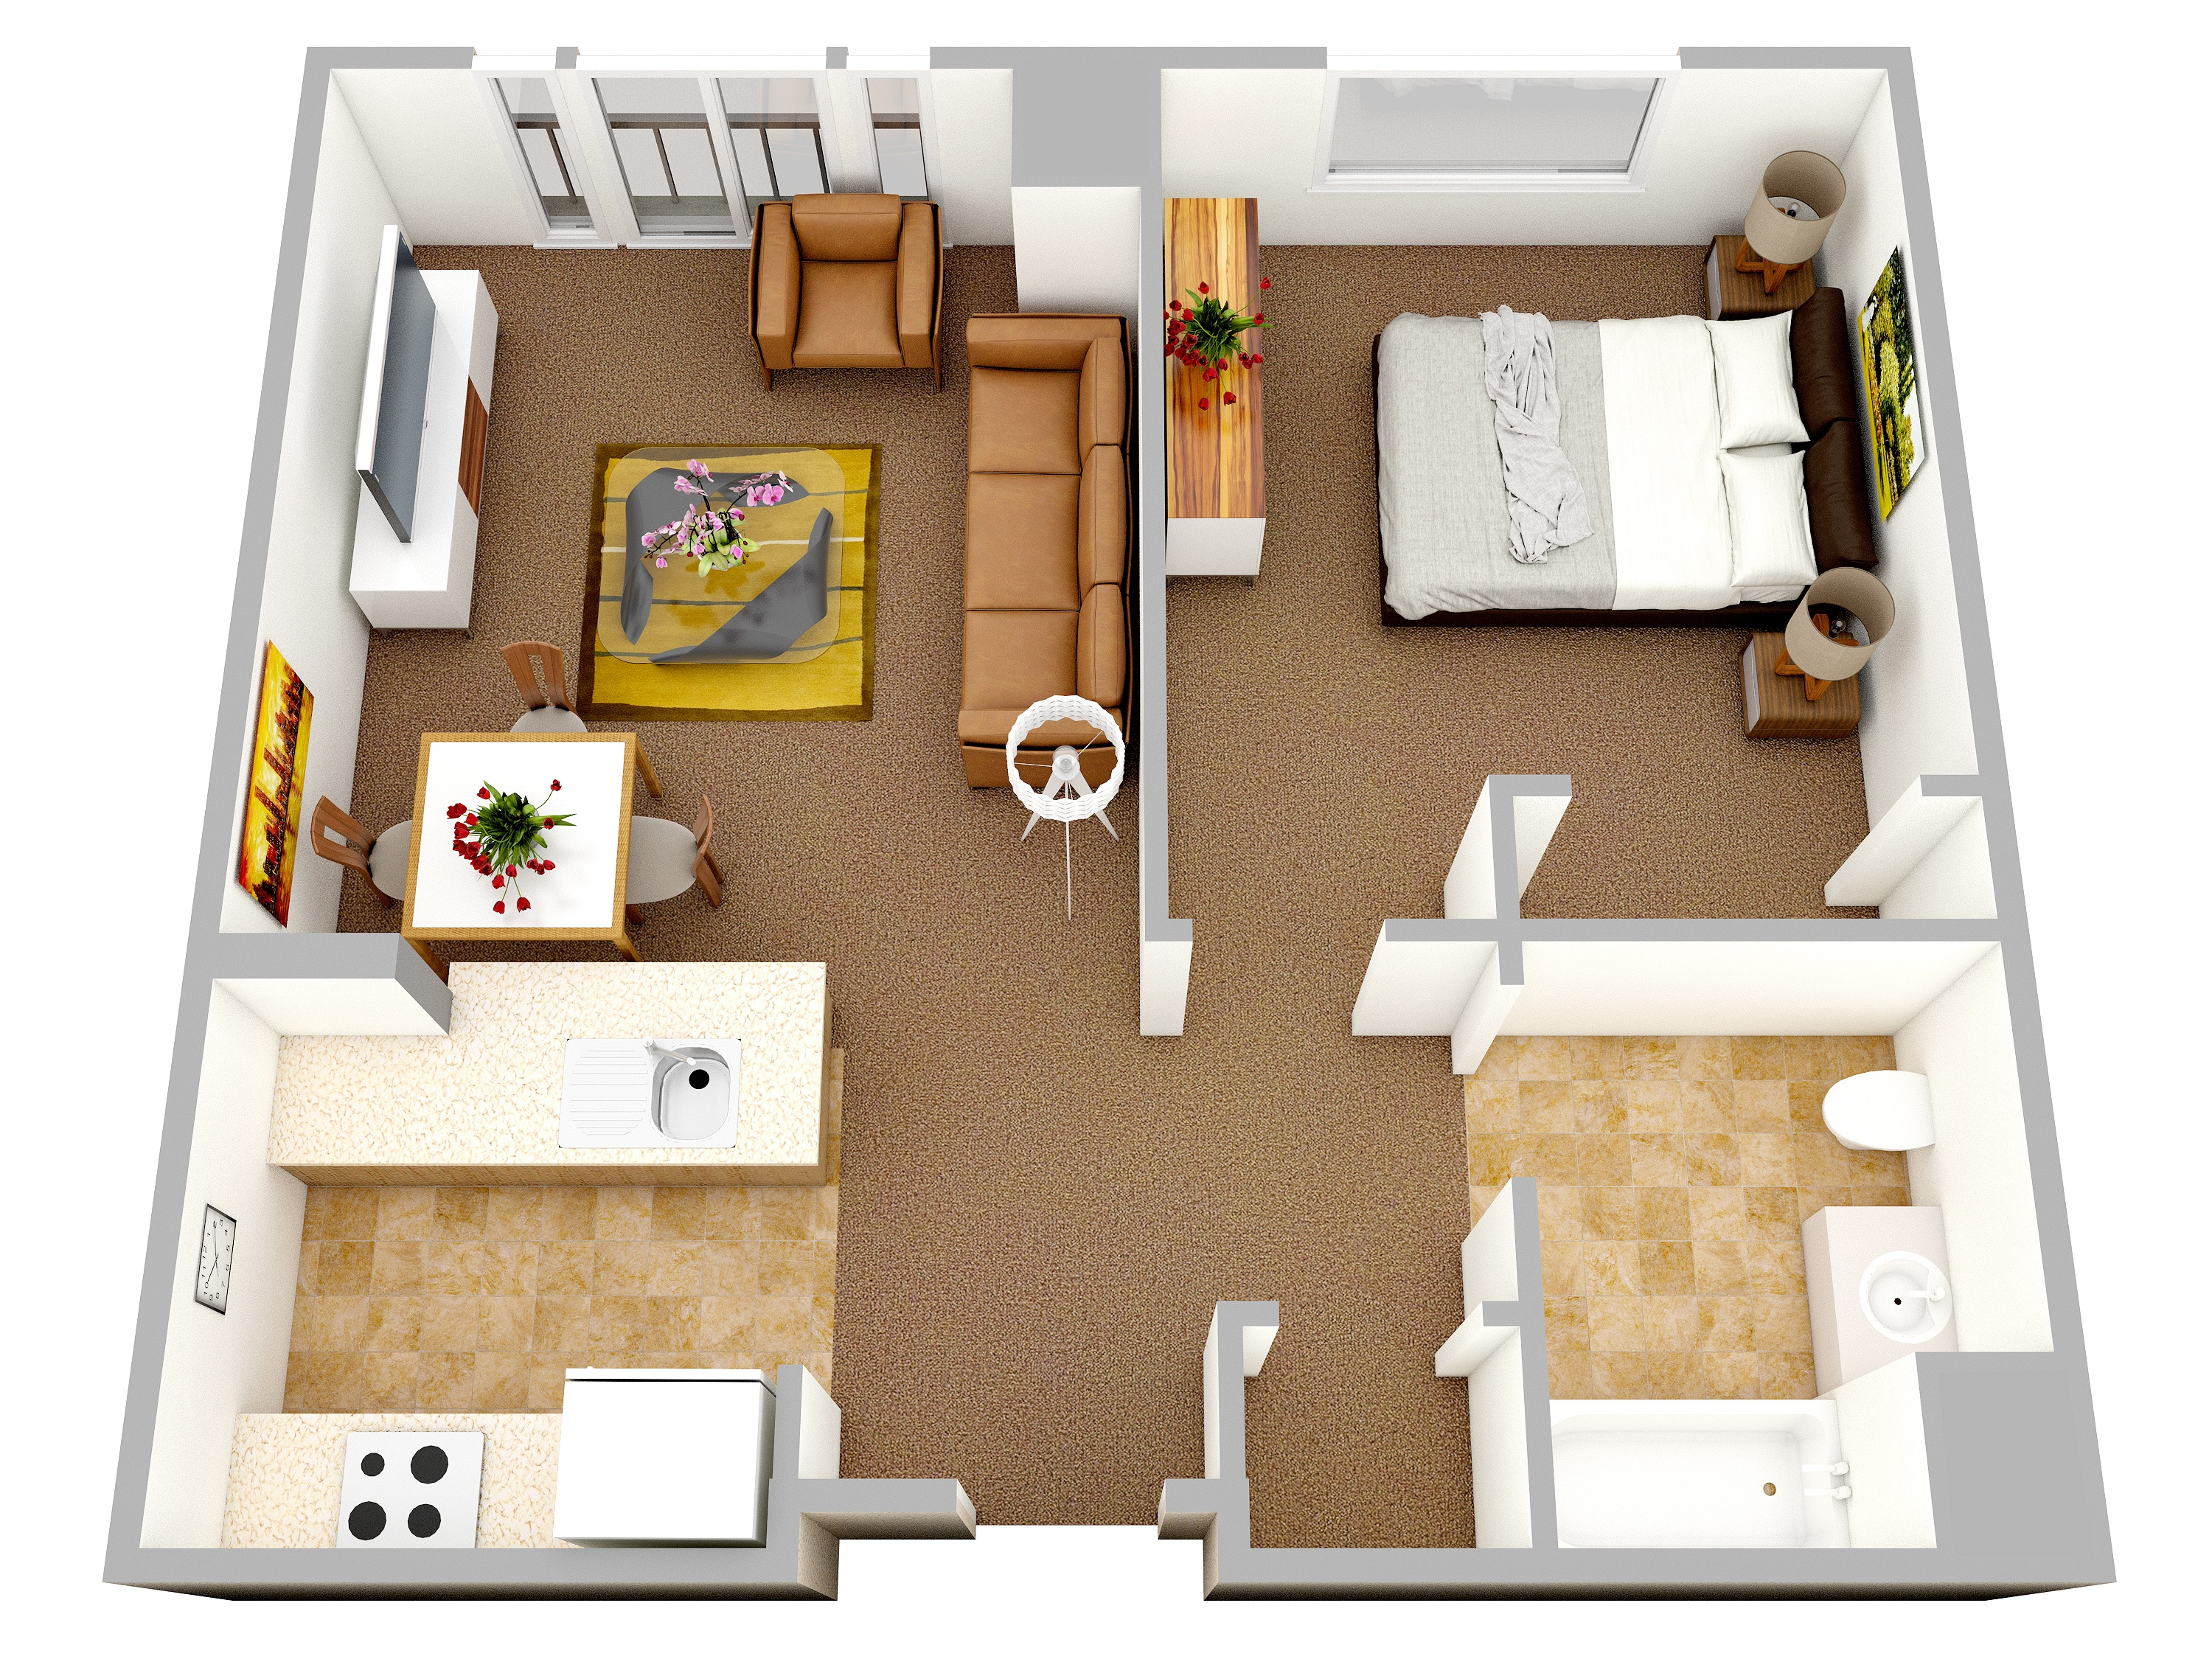 Apartment Room Layout 1 bedroom apartment/house plans